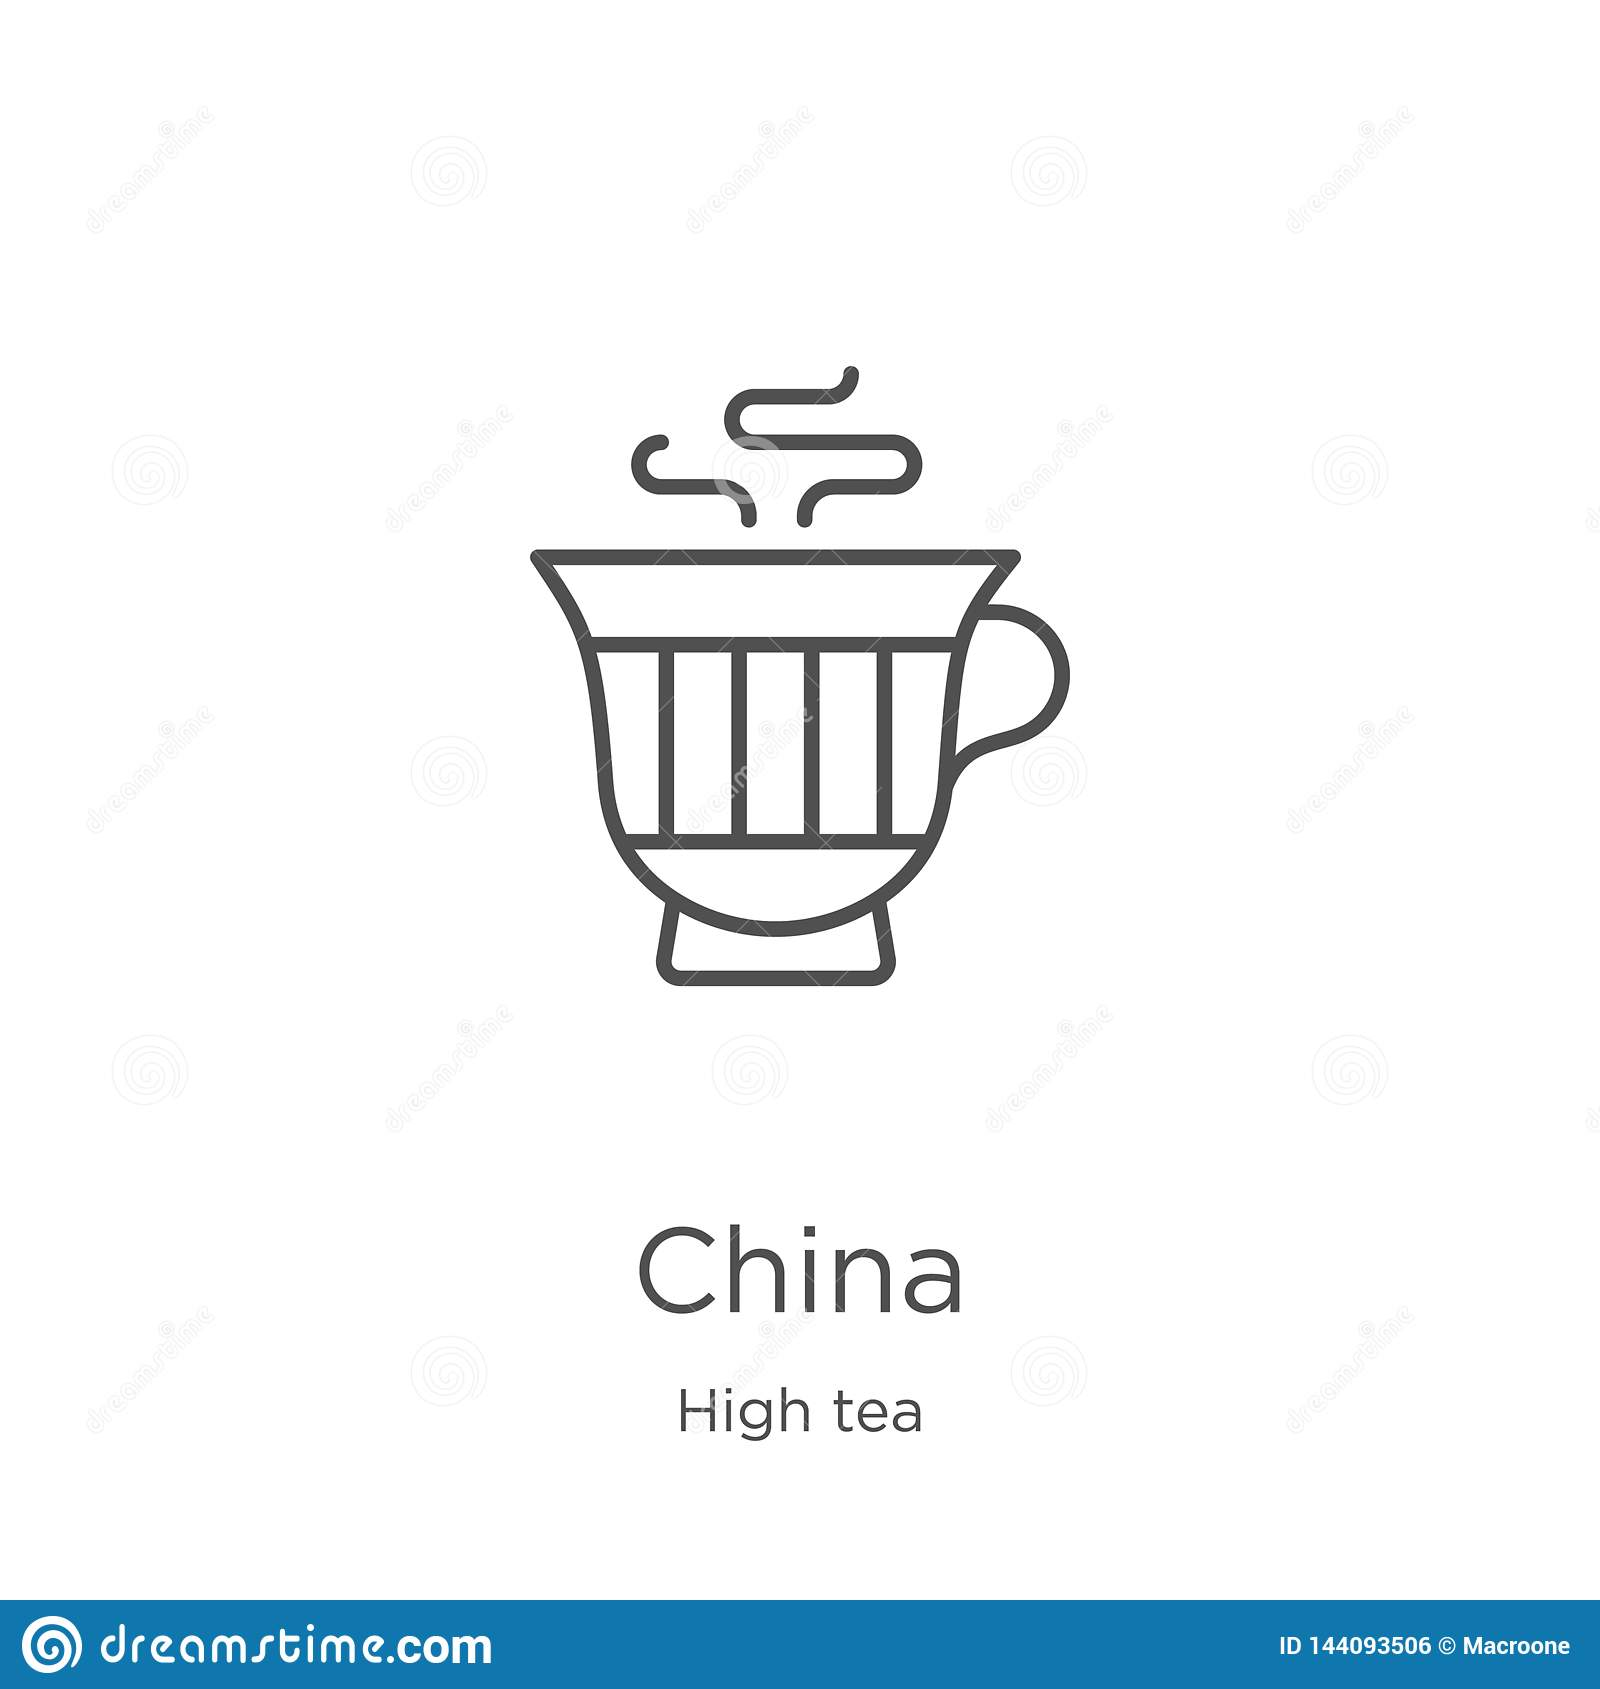 china icon vector from high tea collection. Thin line china outline icon vector illustration. Outline, thin line china icon for